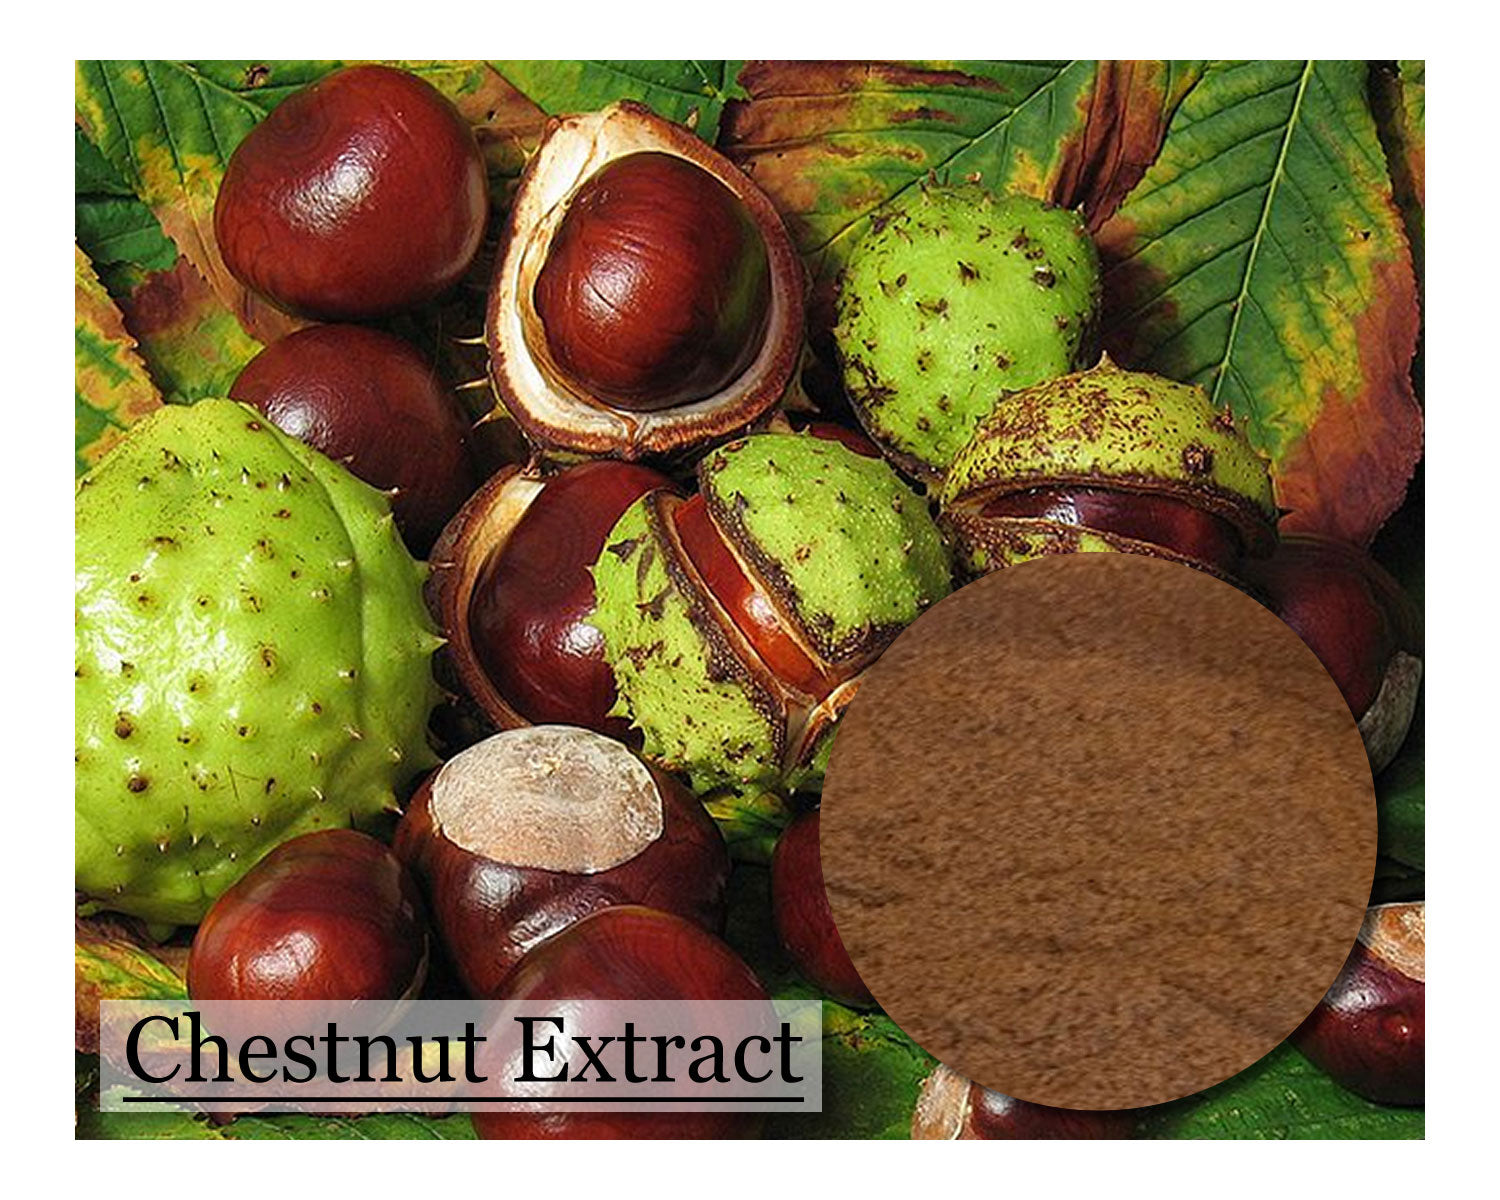 Chestnut Extract 2oz